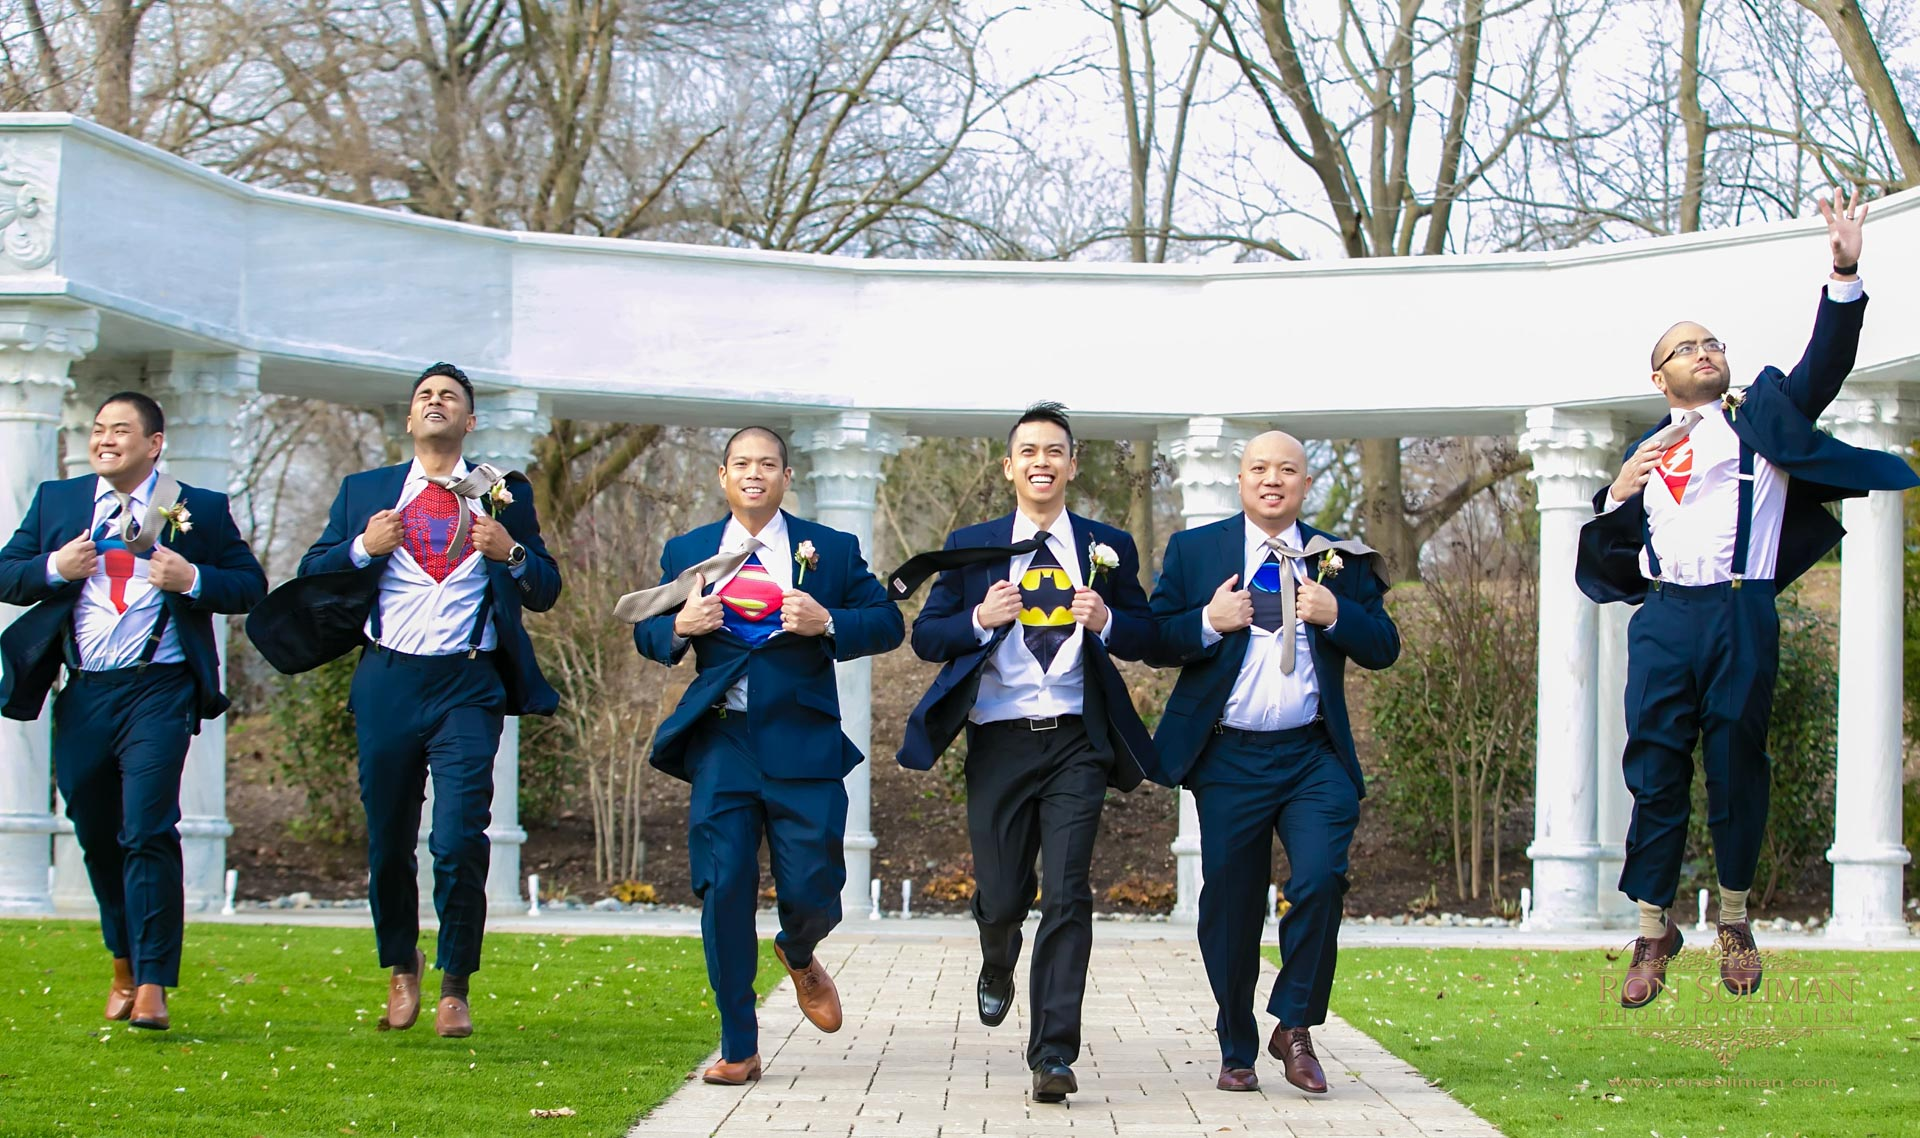 Best Superhero groomsmen photos